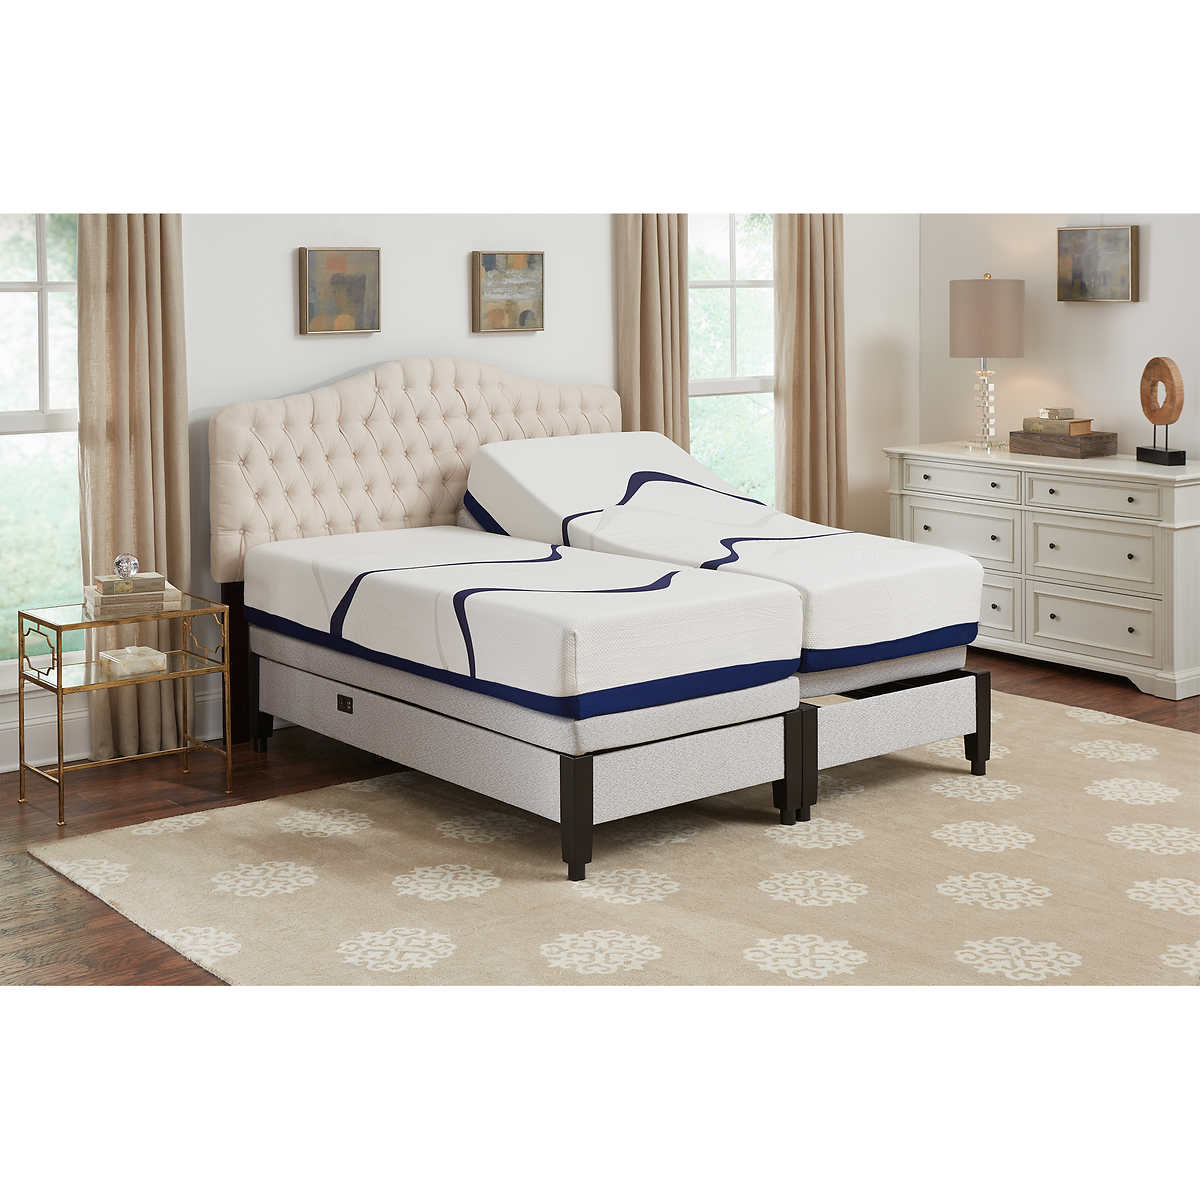 leggett platt attwood 12 split cal king memory foam mattress with adjustable base